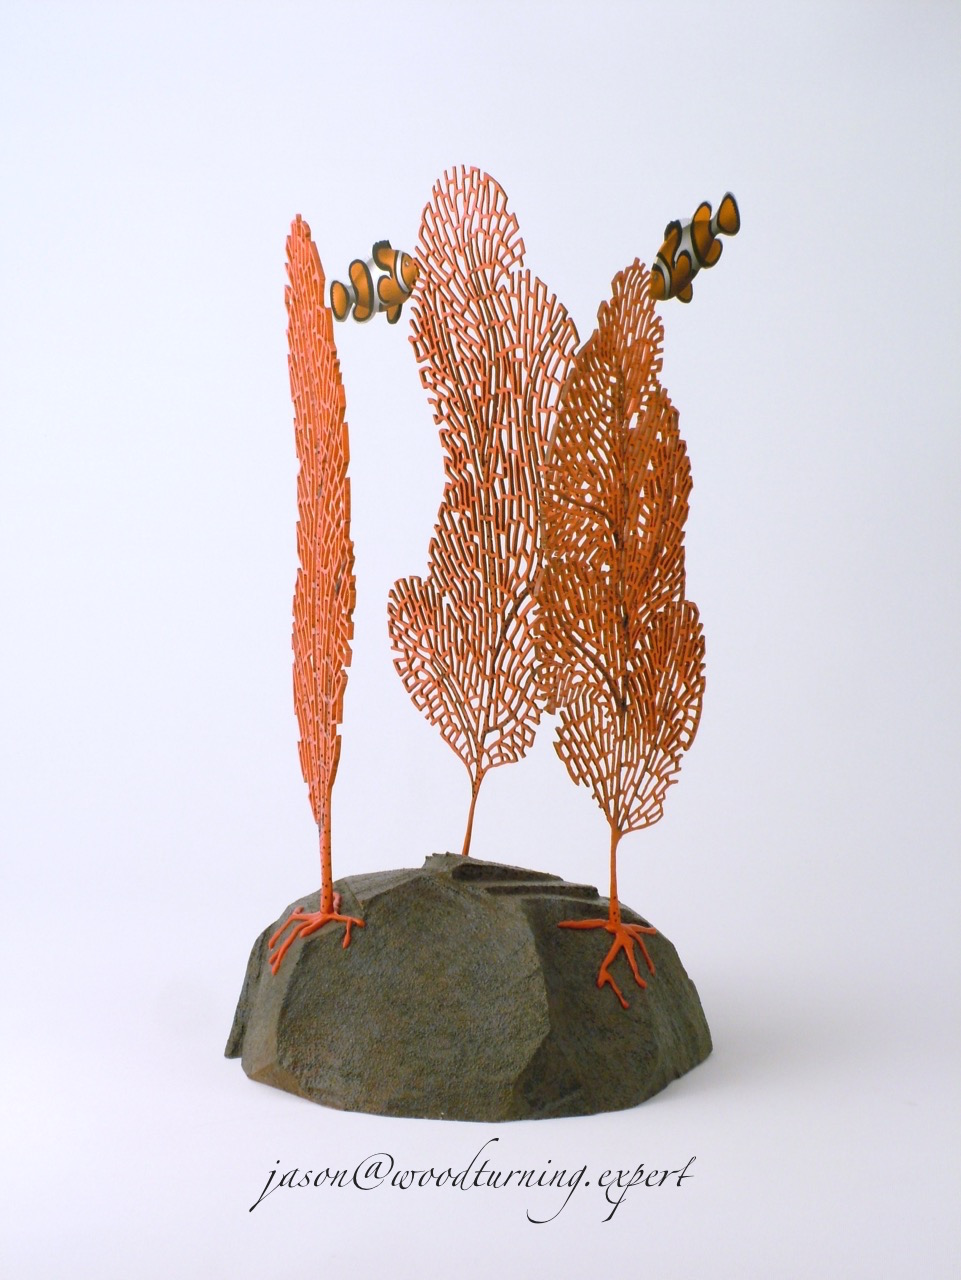 woodturned coral sculpture from a different viewpoint